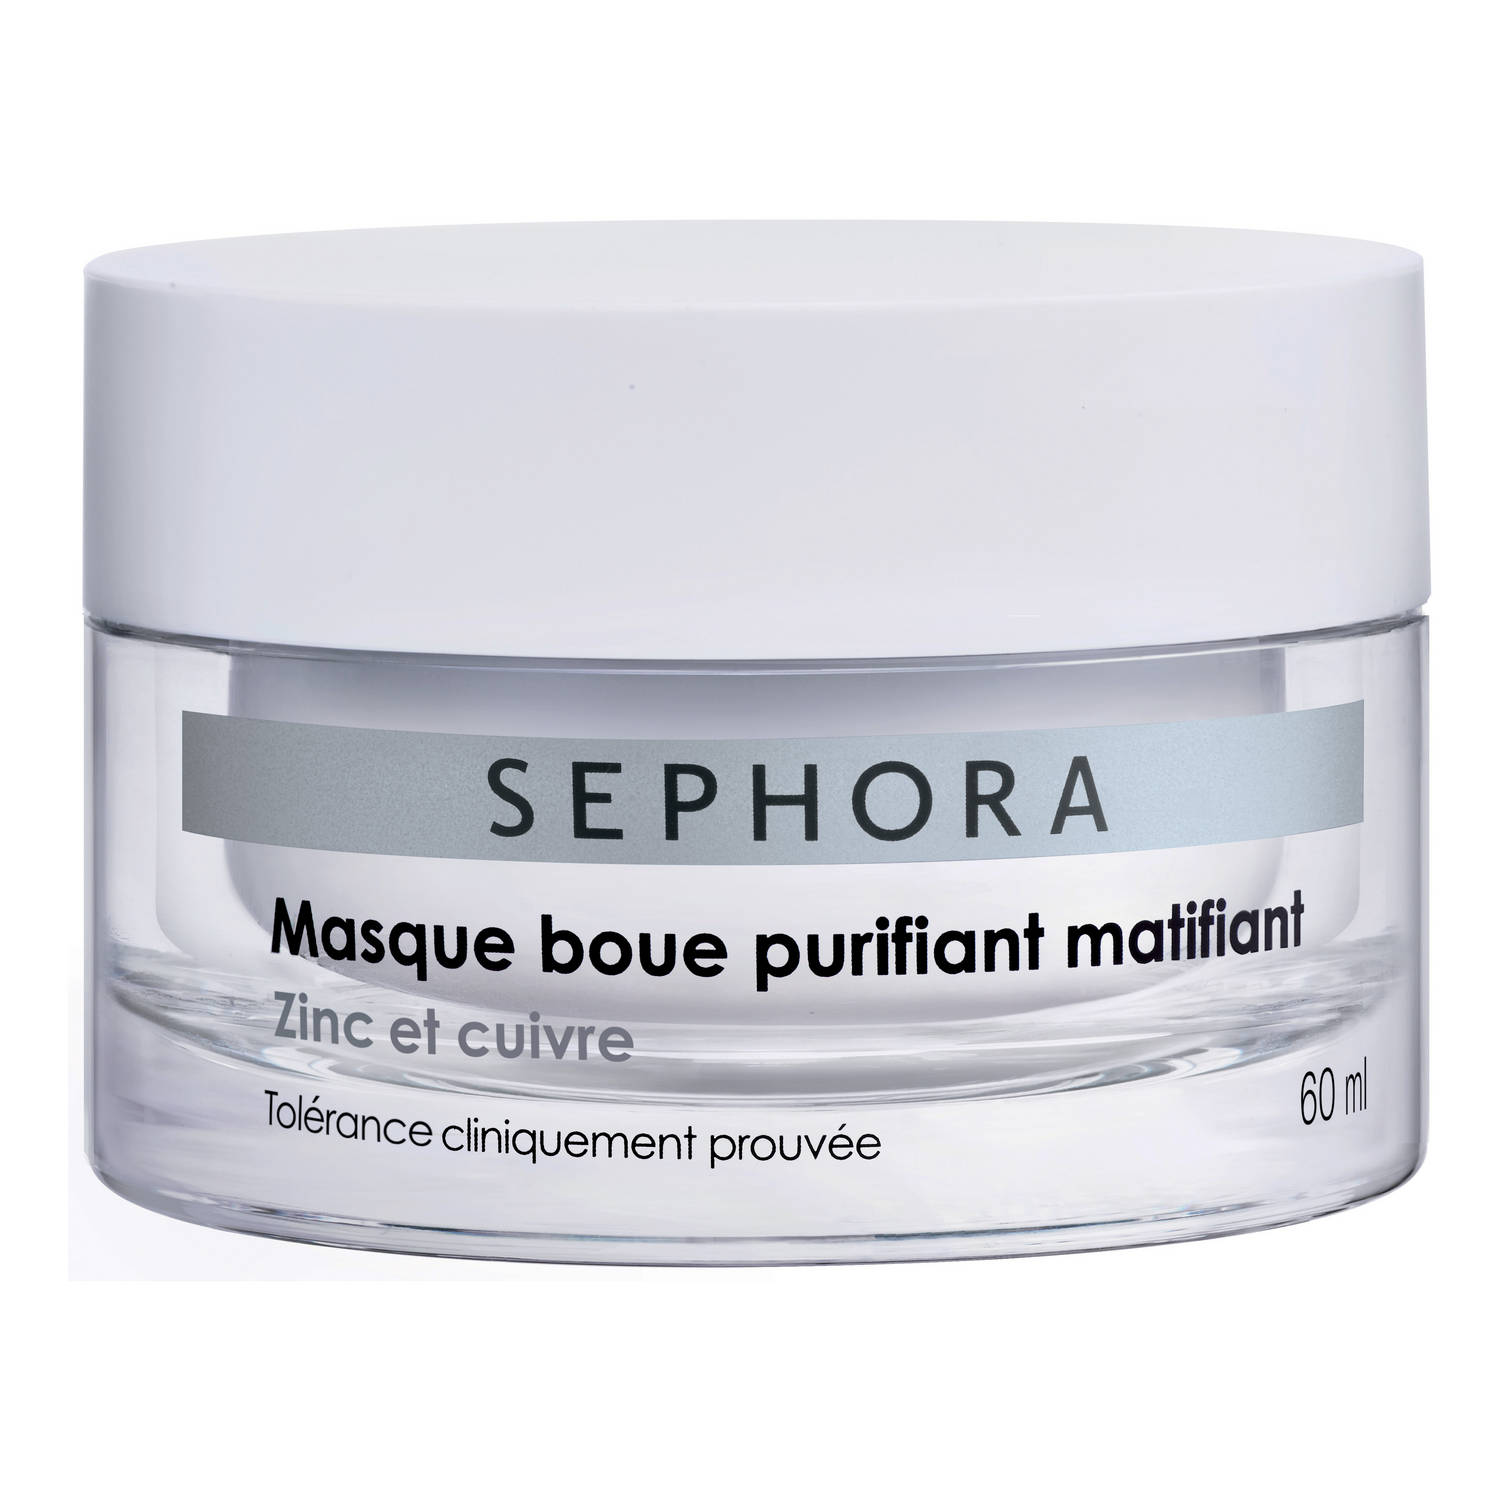 Masque boue purifiant matifiant